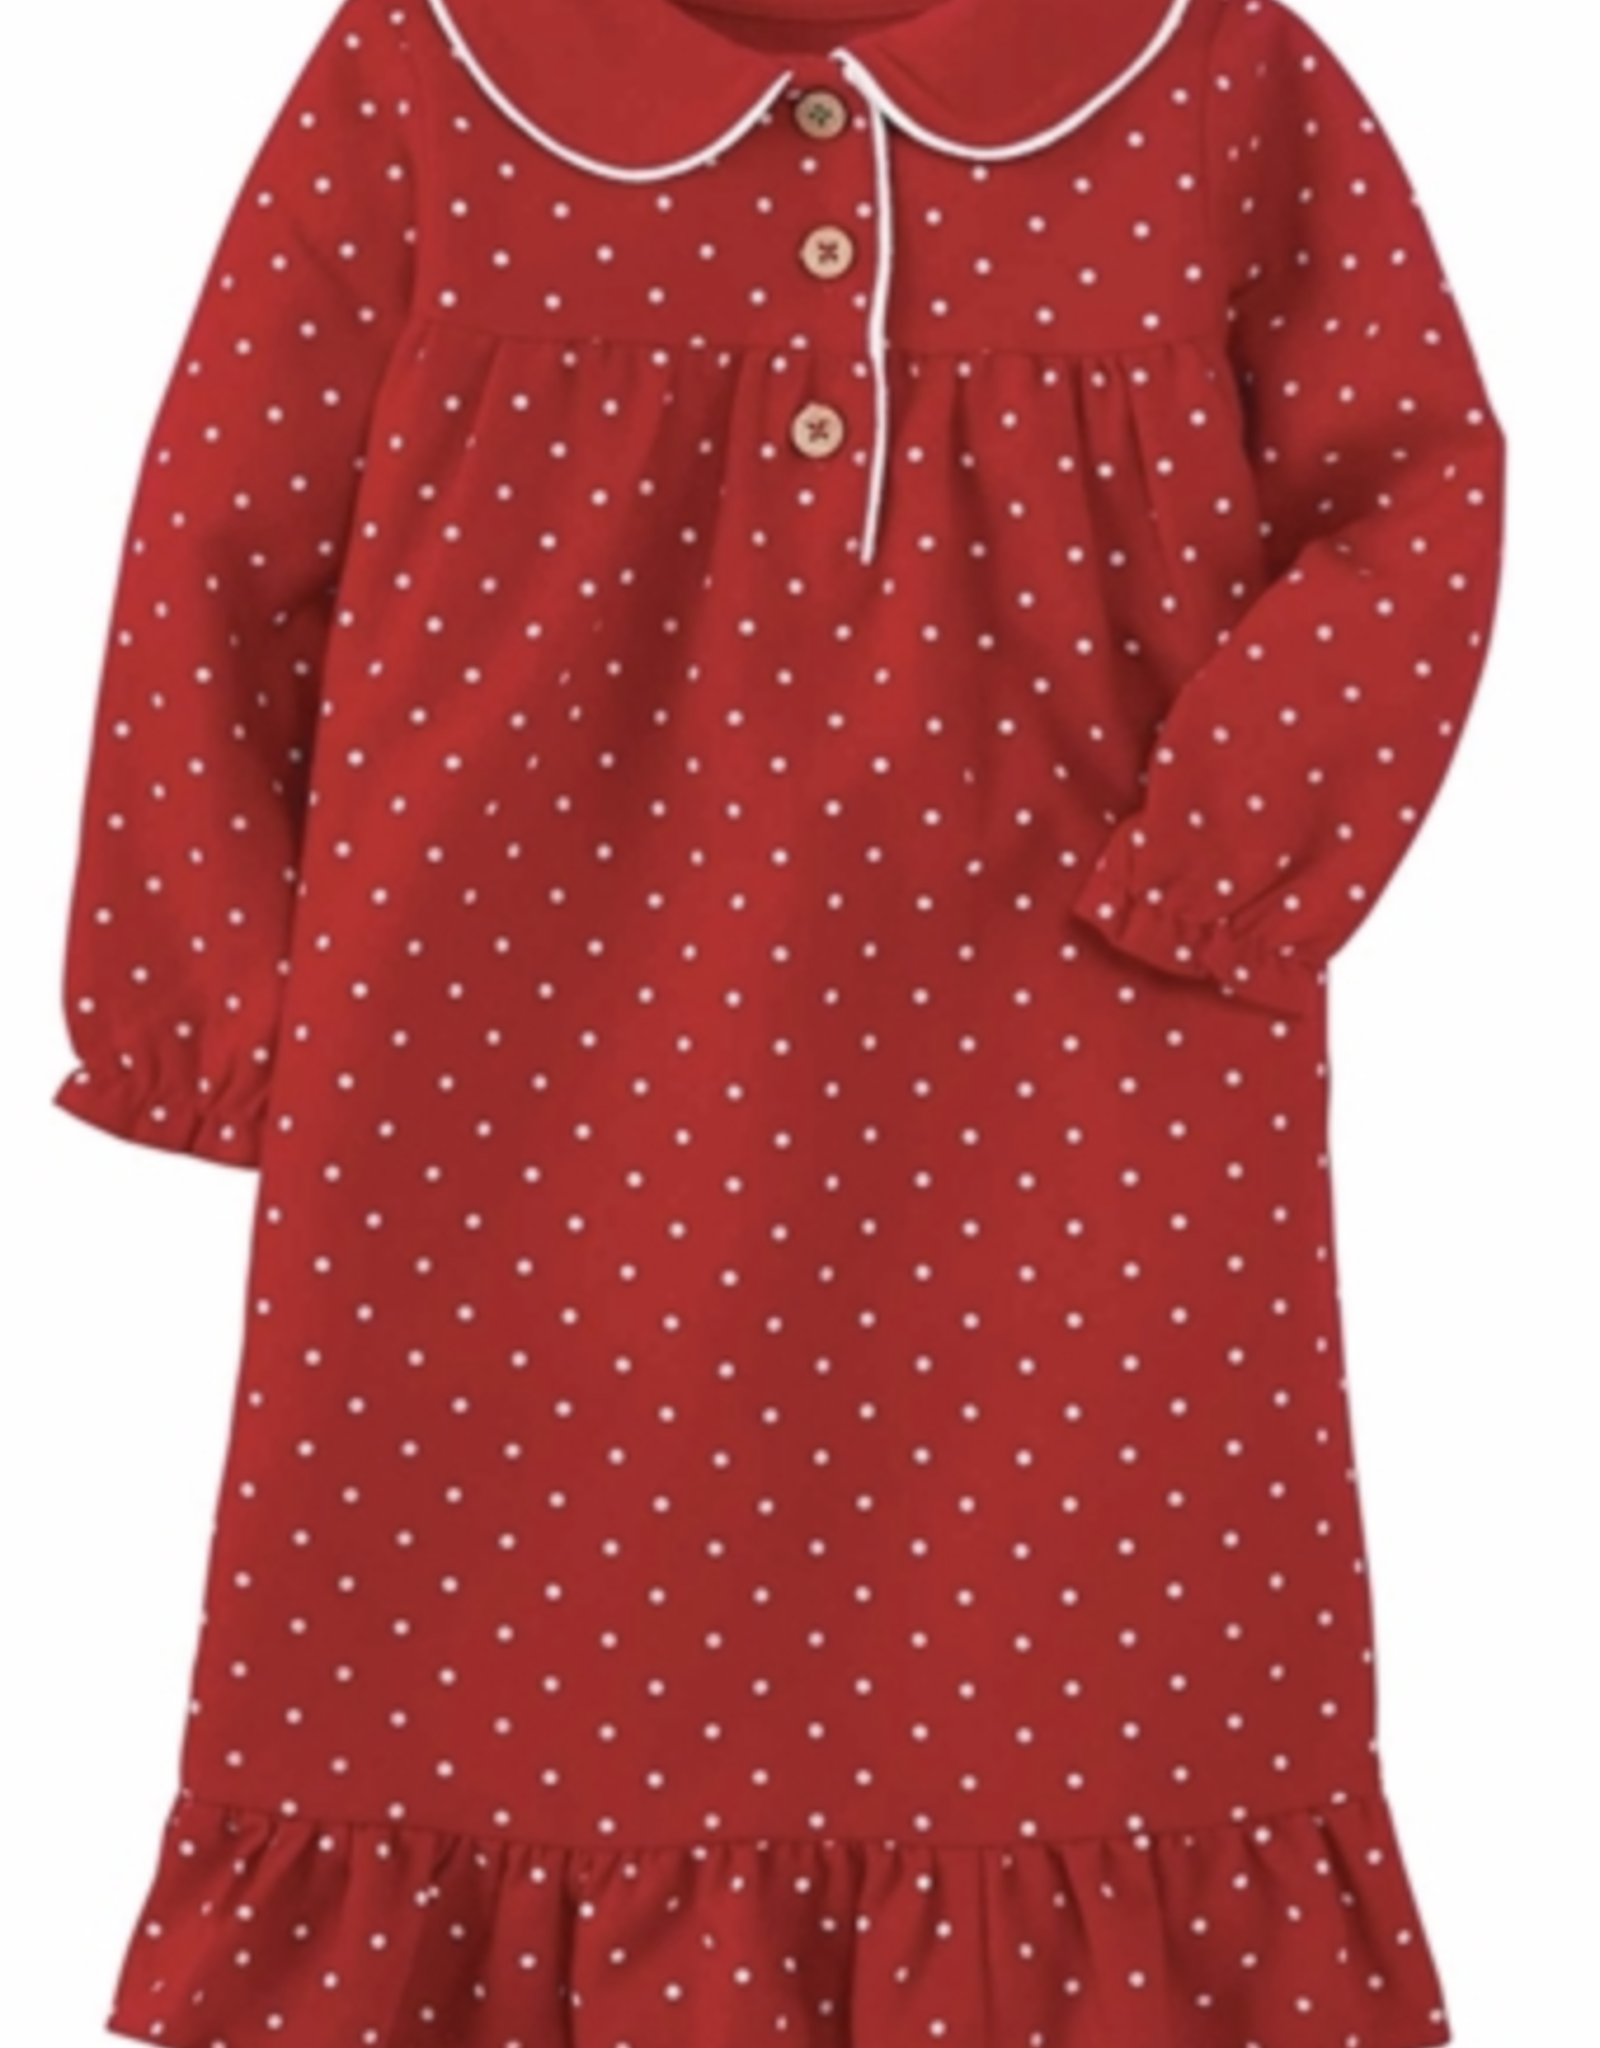 Polka Dot Flannel Gown - 2T-3T